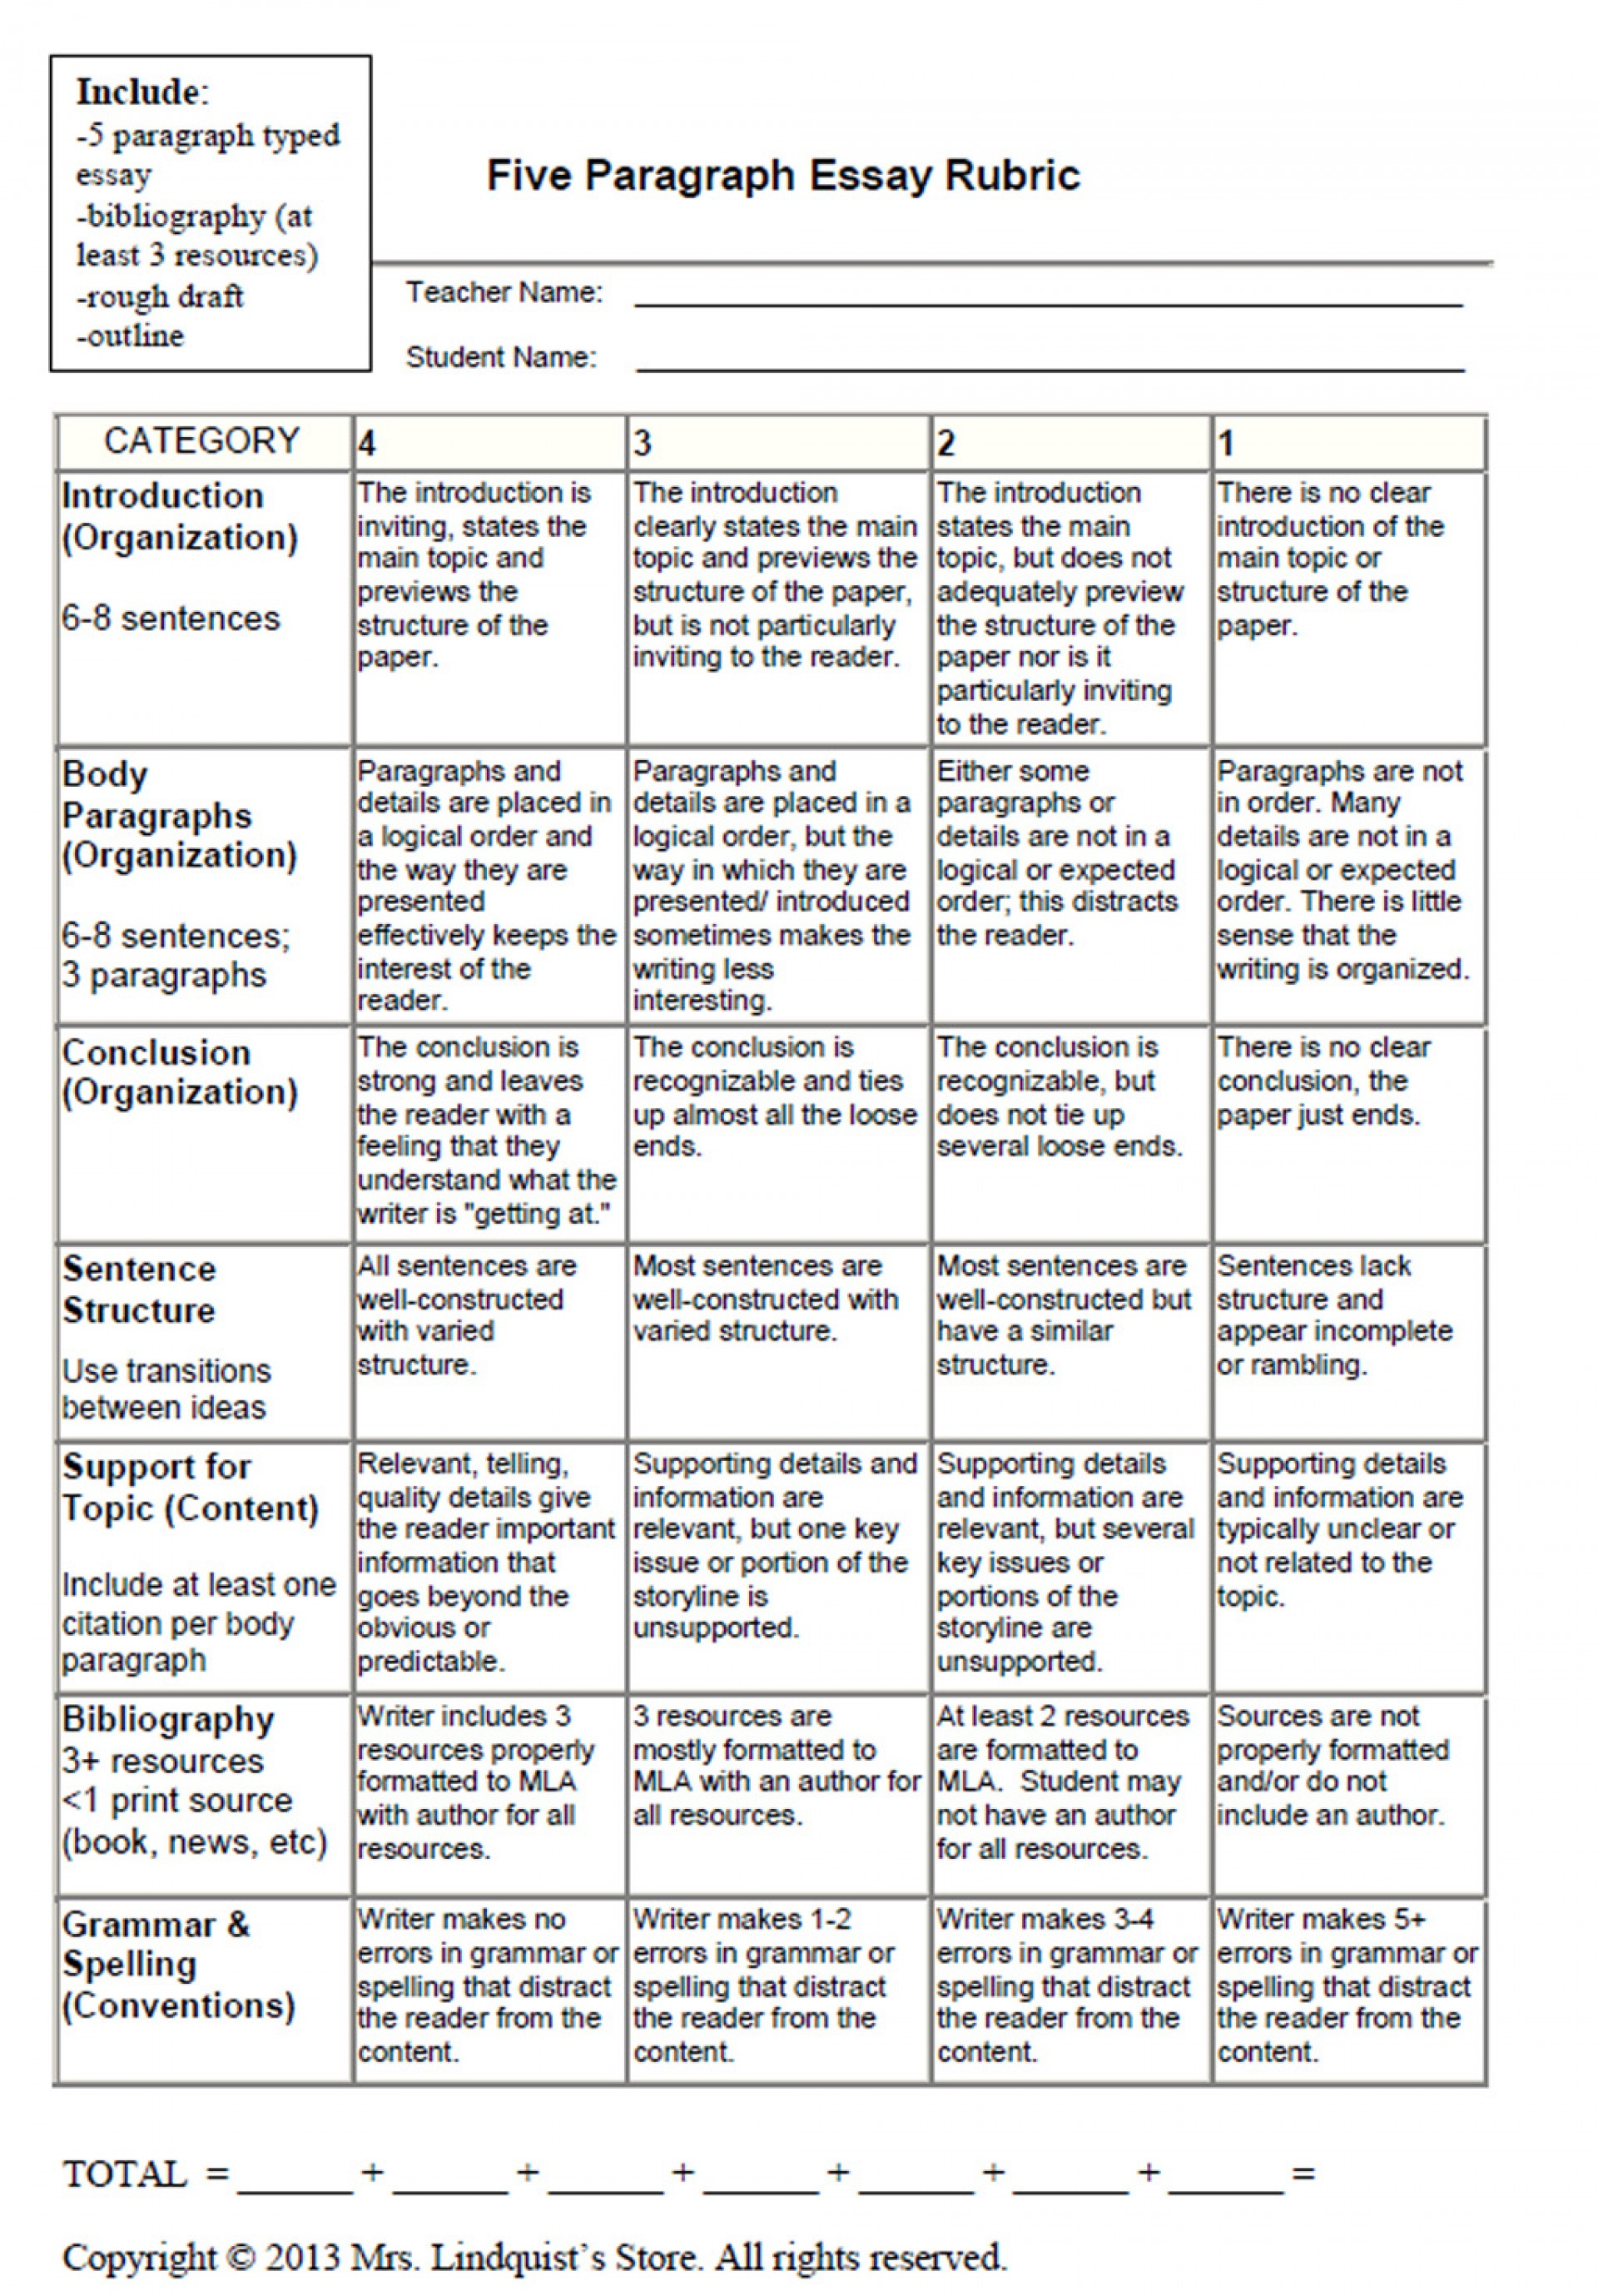 023 Graphic20organizers20and20rubrics20for20writing04 Large Rubrics In Essay Writing Formidable Holistic For Pdf Rubric Middle School 1920